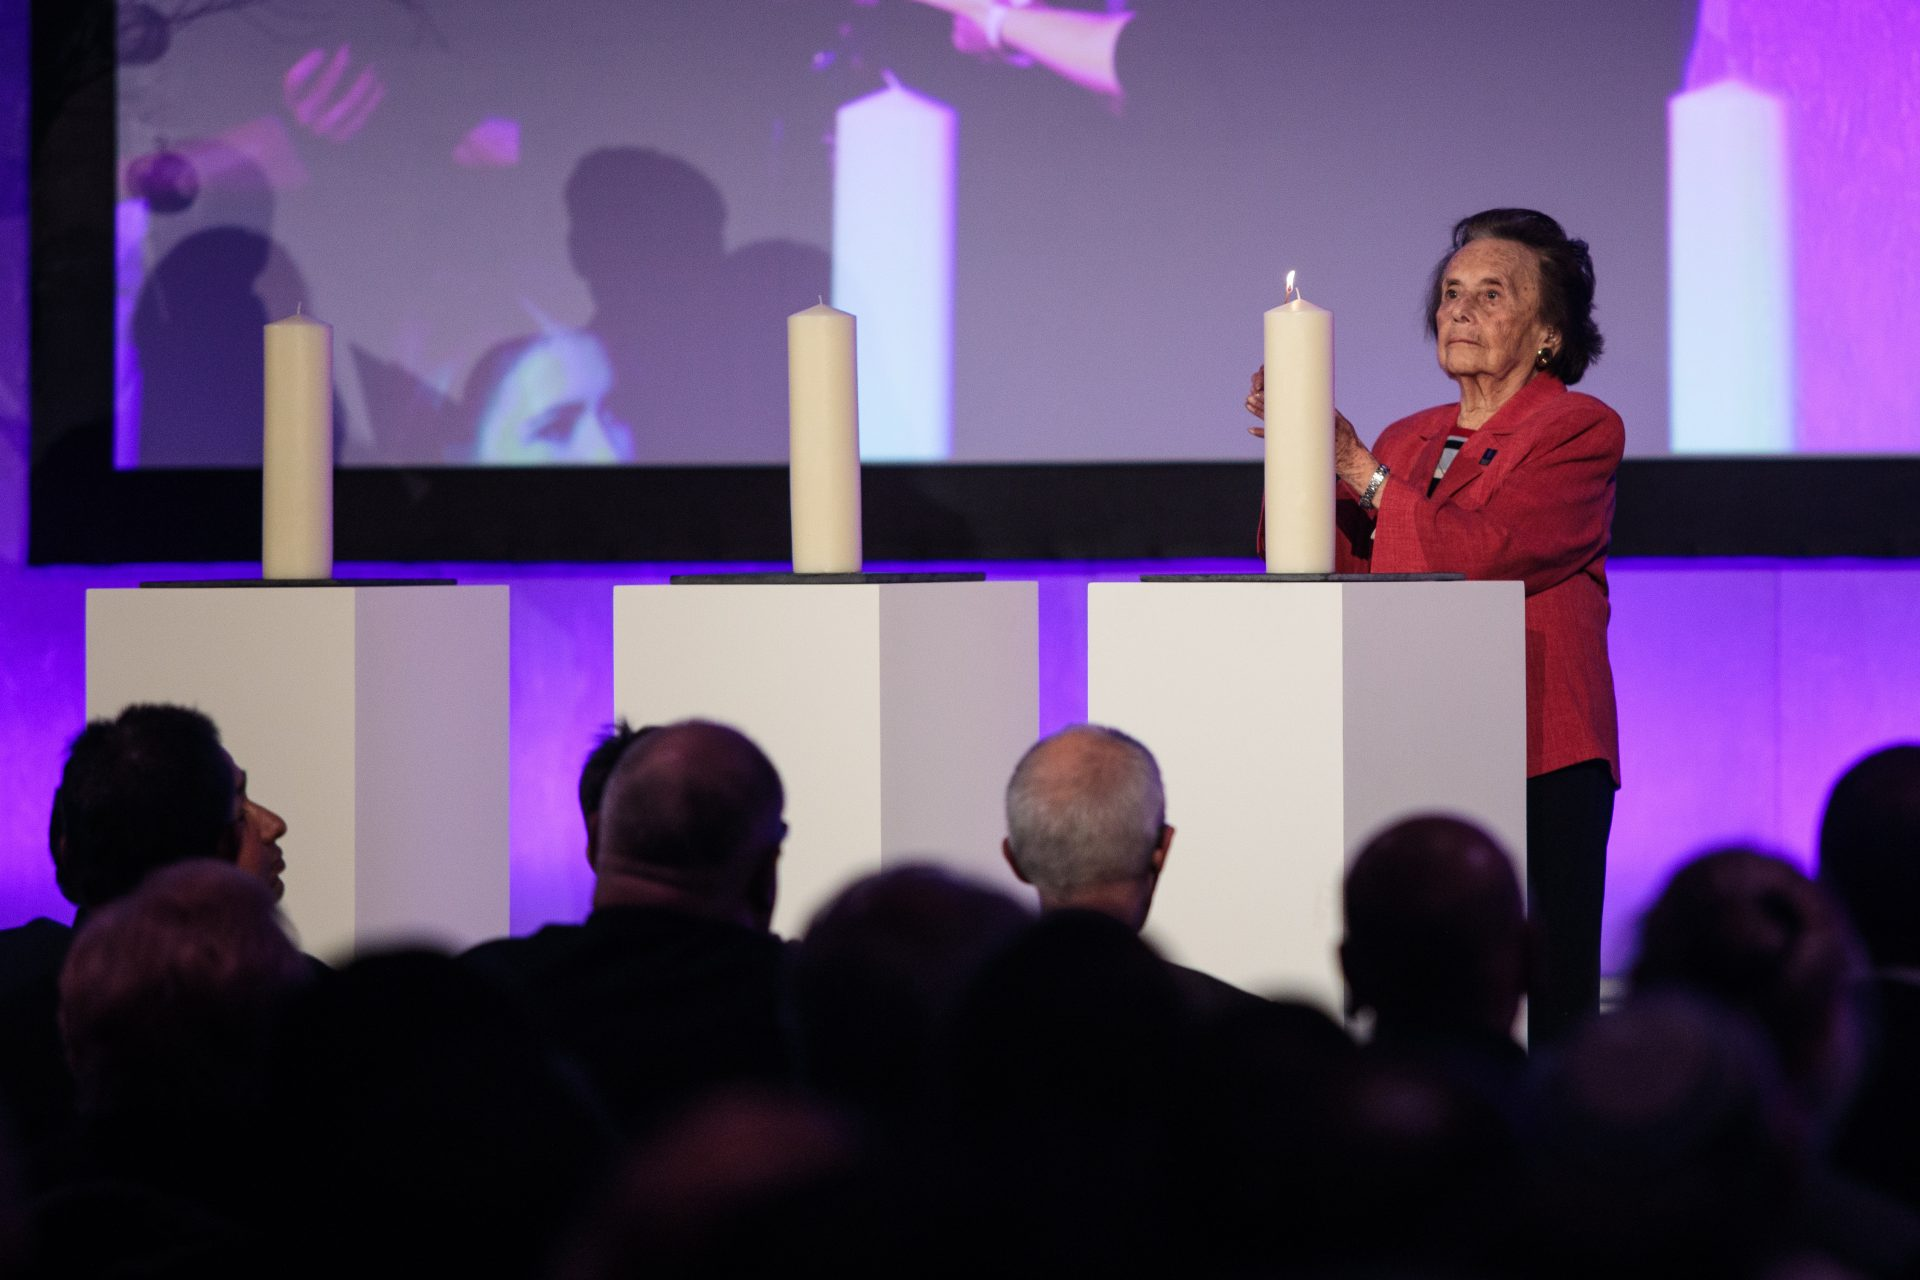 Holocaust survivor Lily Ebert lights a candle during a National Holocaust Memorial Day event at the Queen Elizabeth II Conference Centre. Credit: Jack Taylor/Getty Images